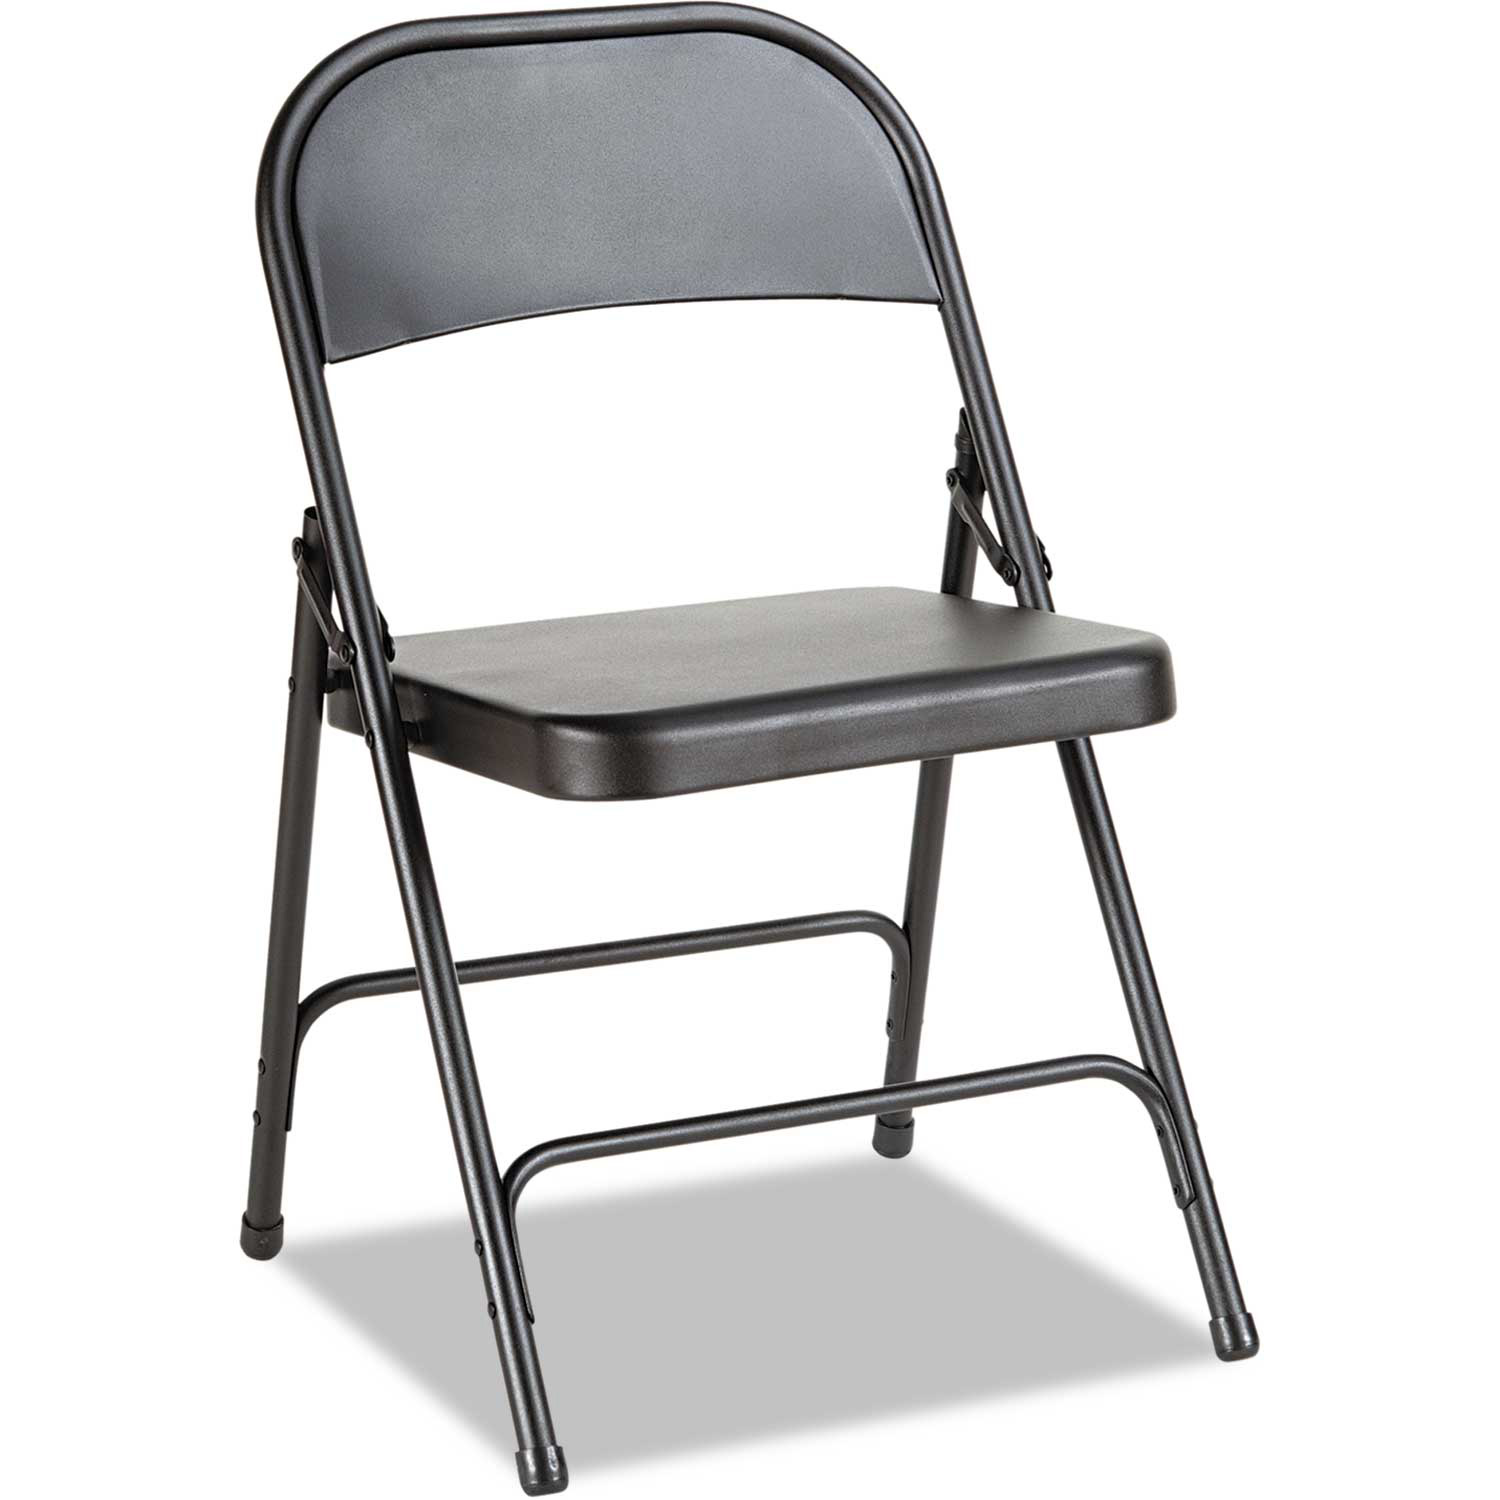 Alera Steel Folding Chair Black 4/Carton by